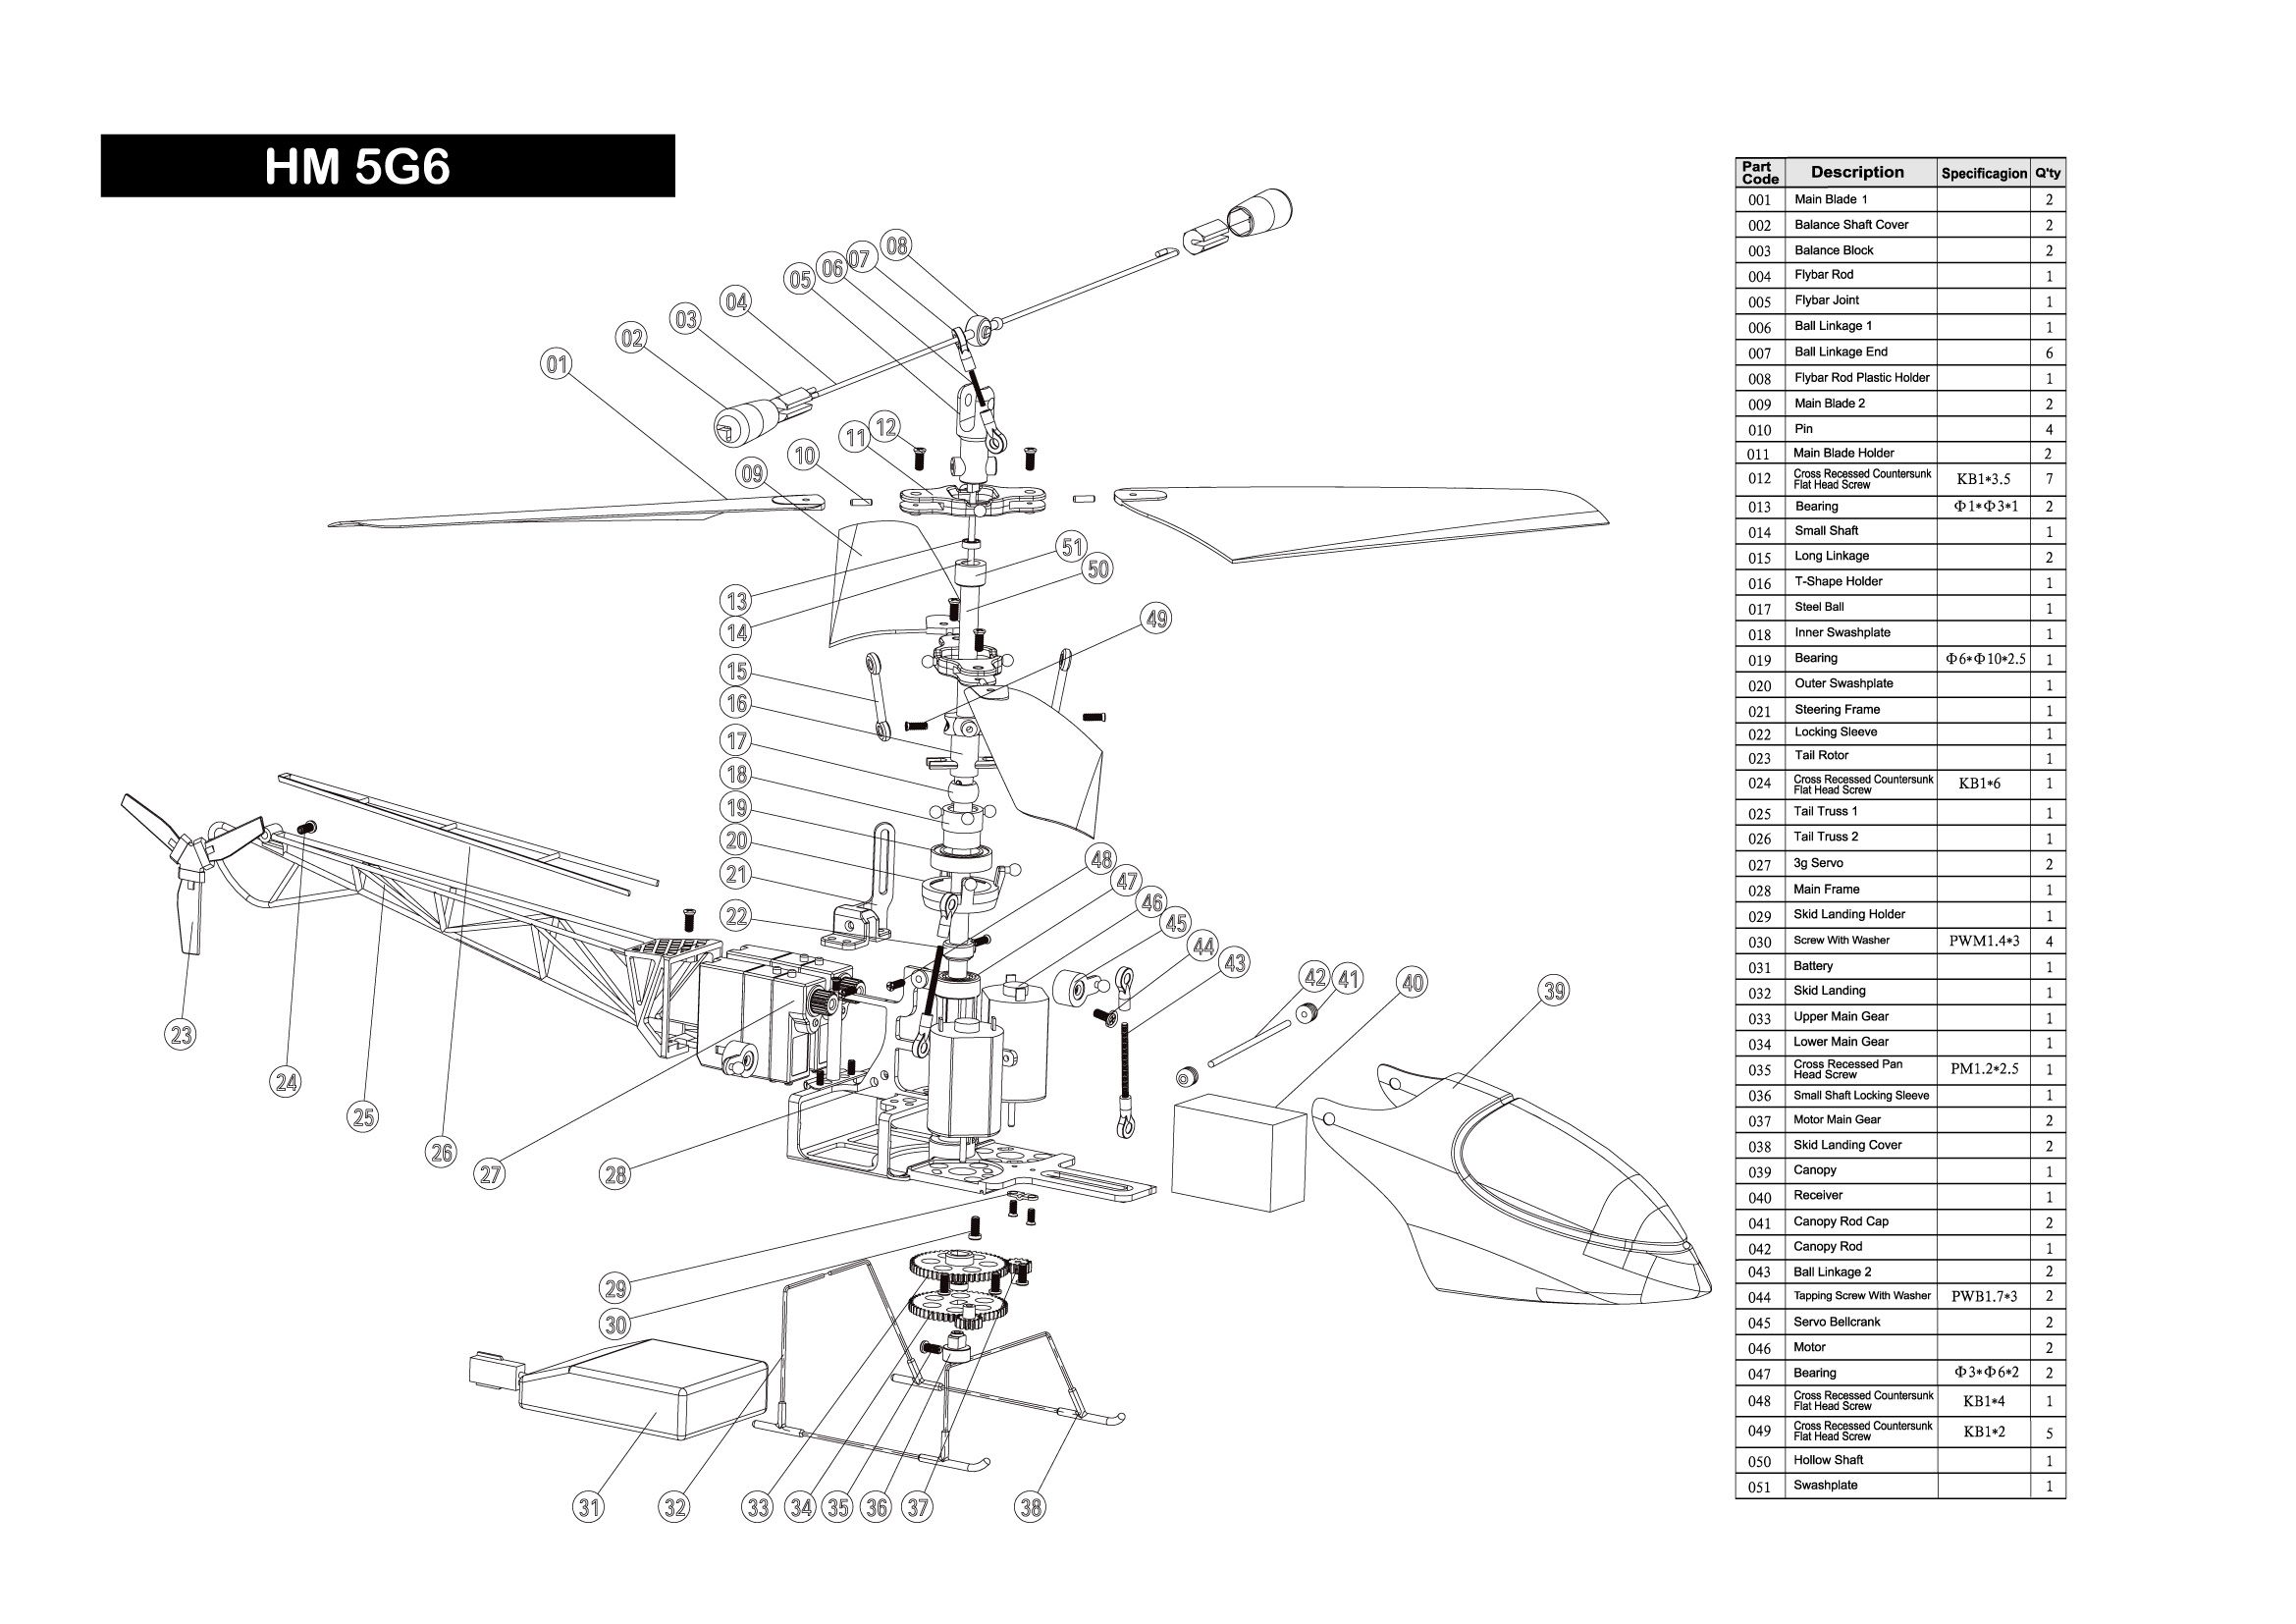 walkera hm 5g6 exploded diagram parts list quadcopters rc rc helicopter anatomy rc helicopter diagram [ 2339 x 1654 Pixel ]